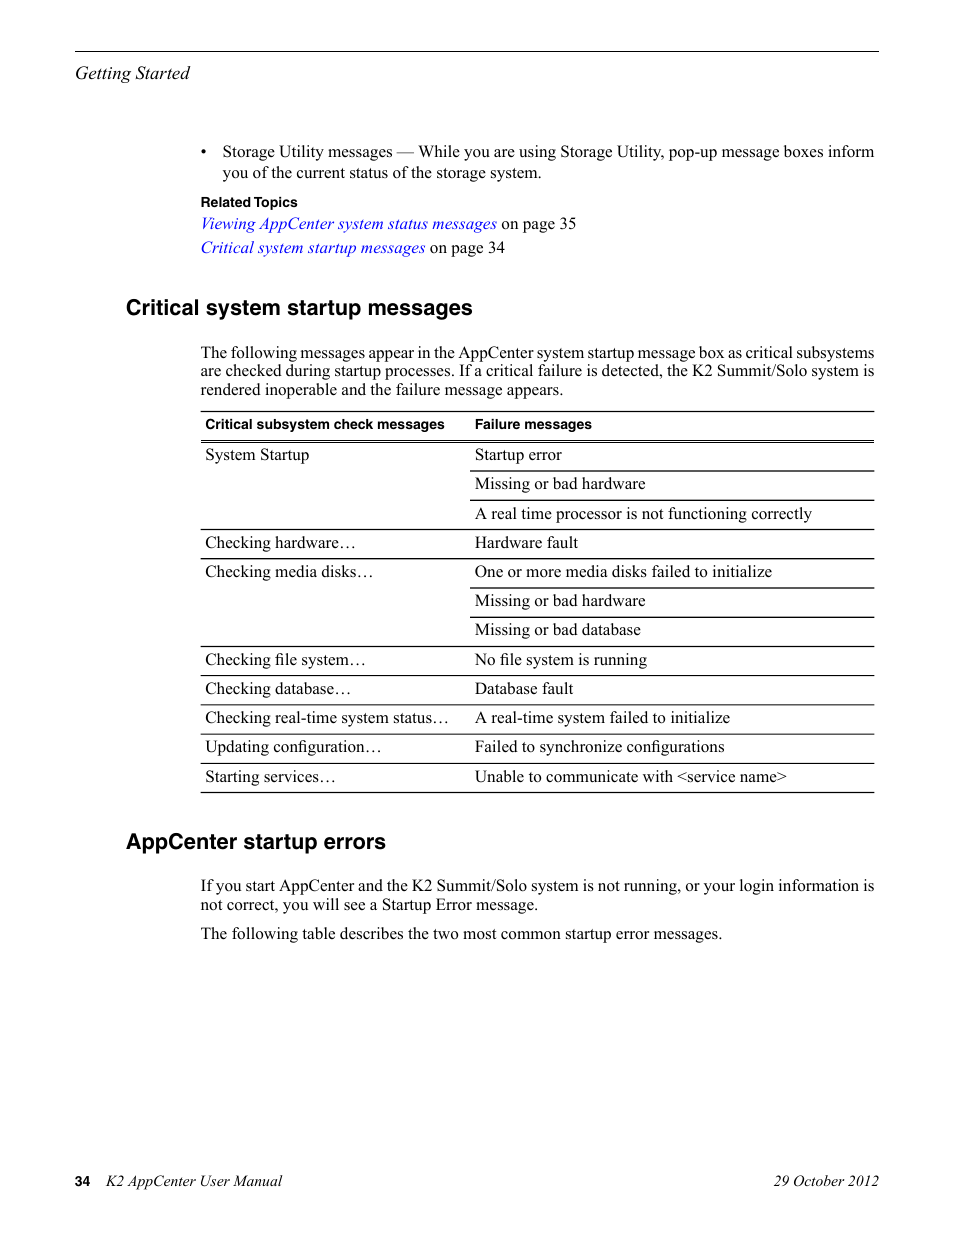 Critical system startup messages, Appcenter startup errors